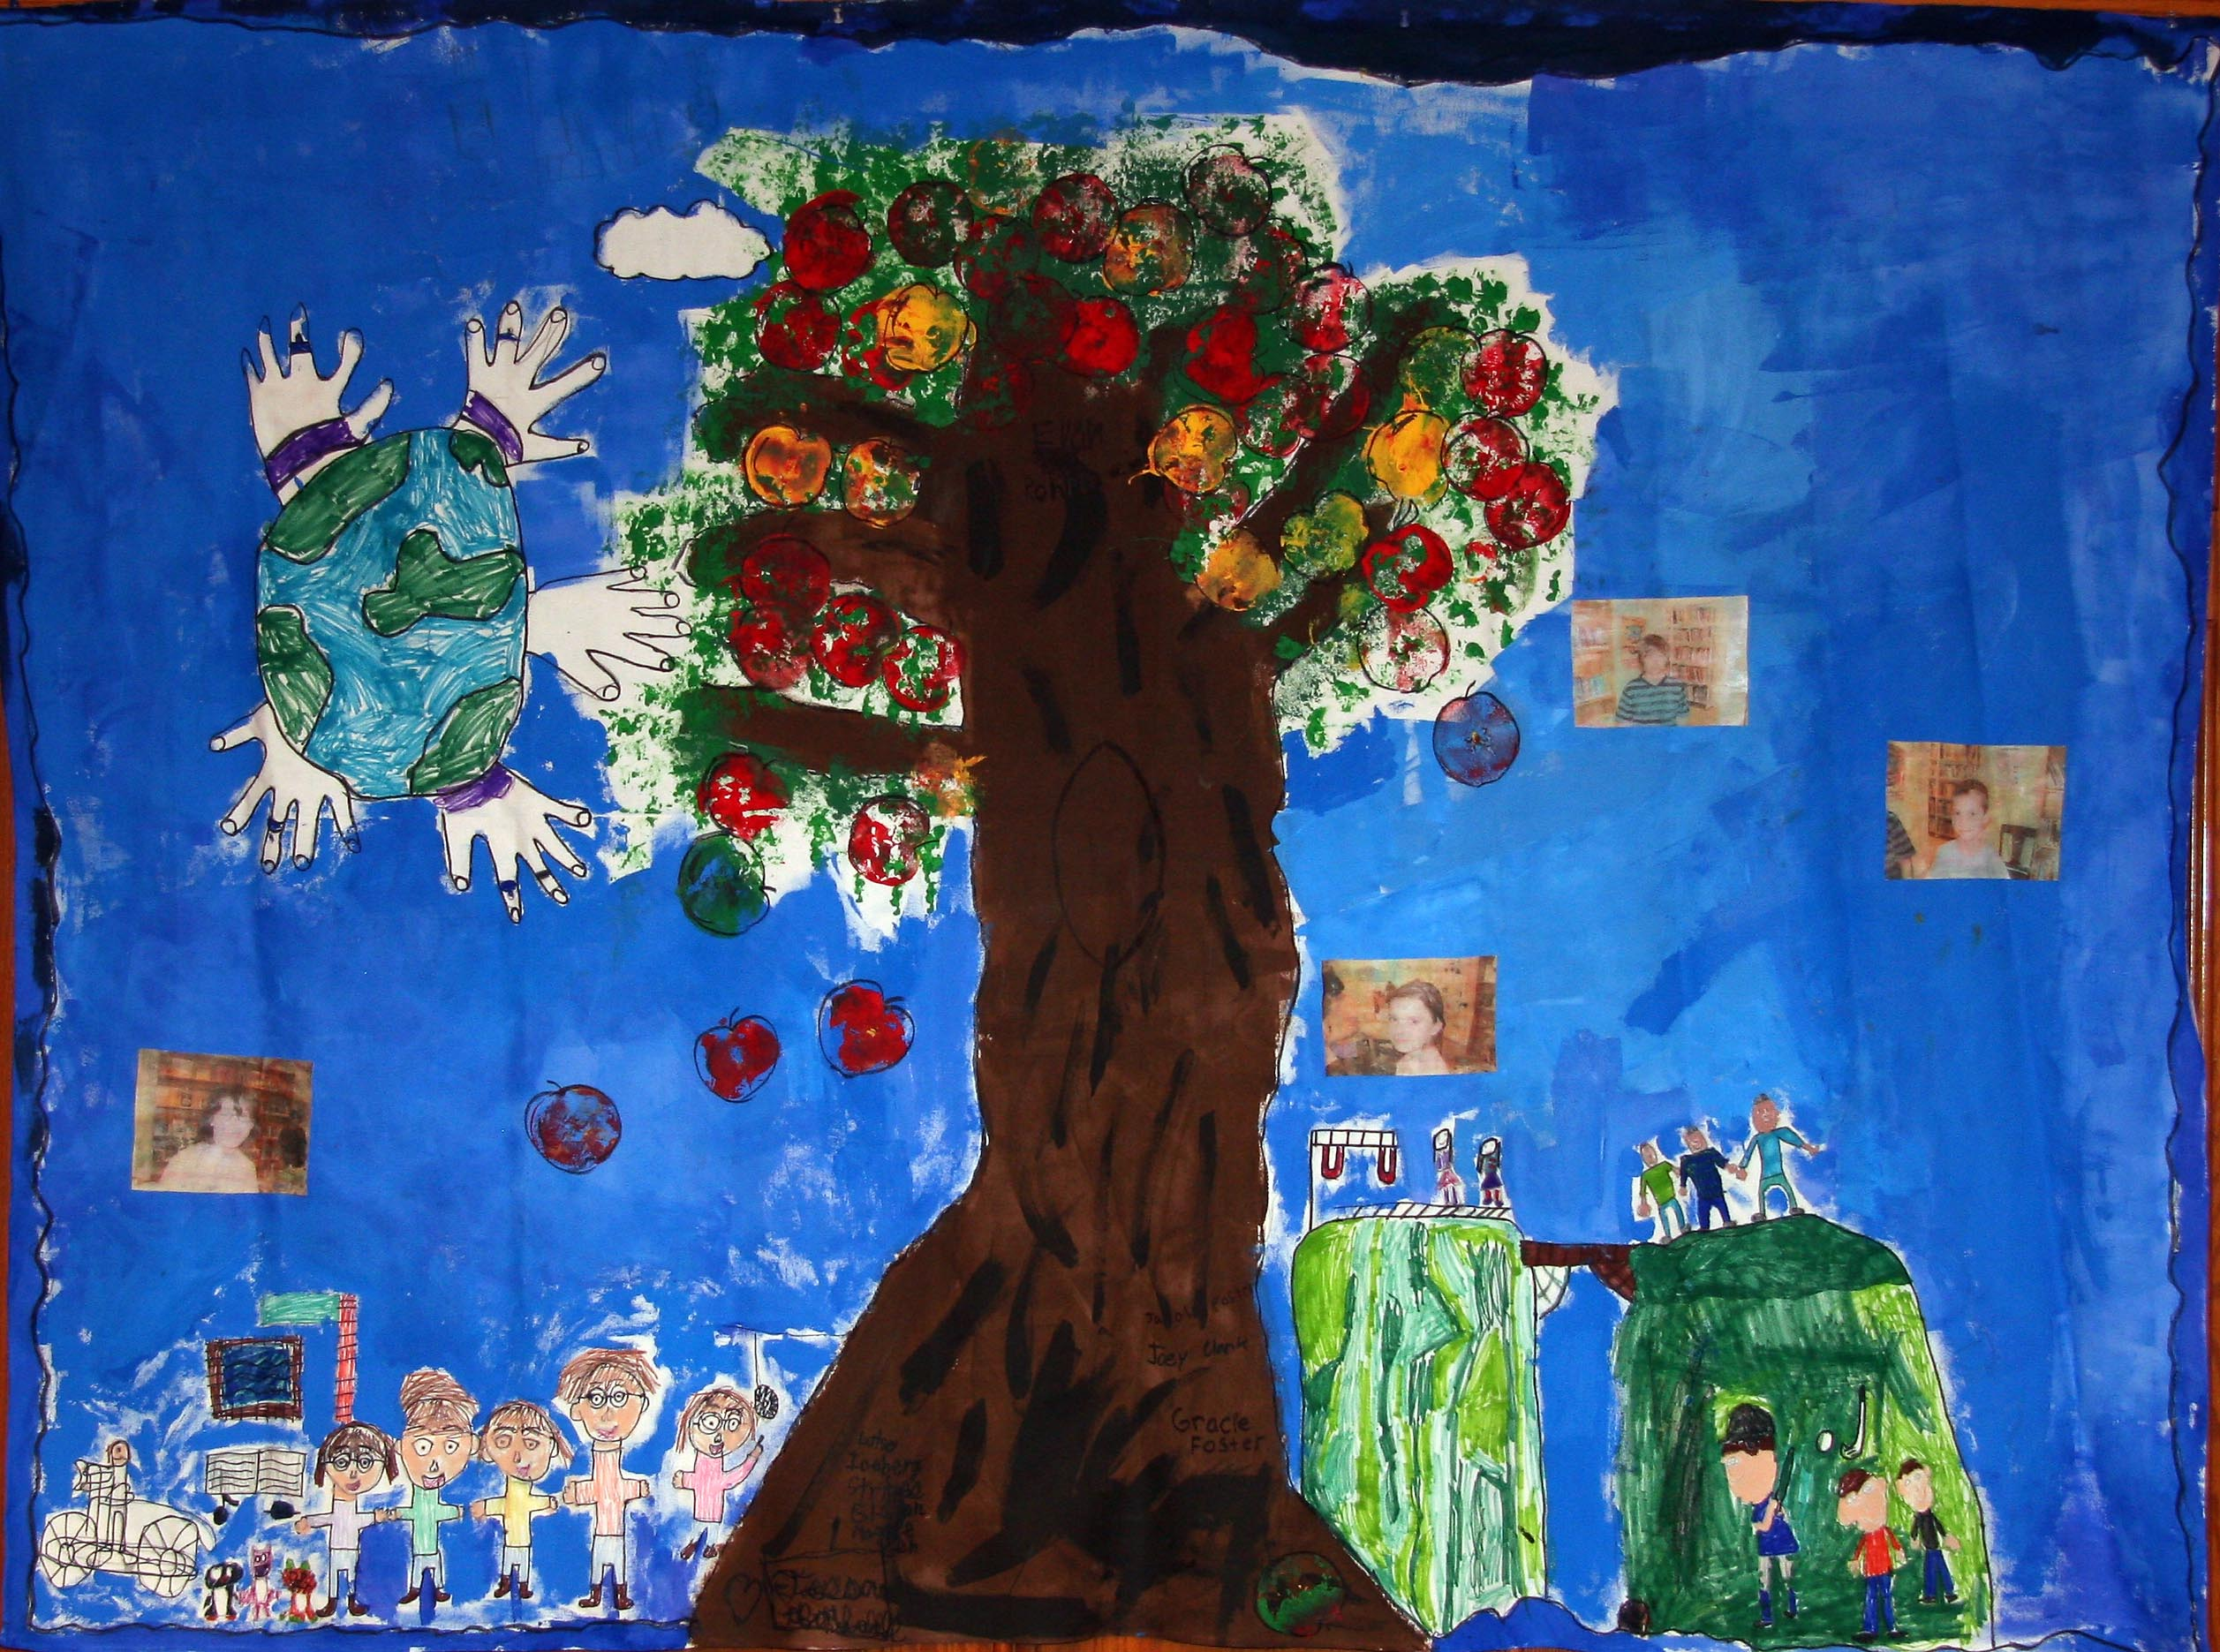 Mural created by Red Hook children